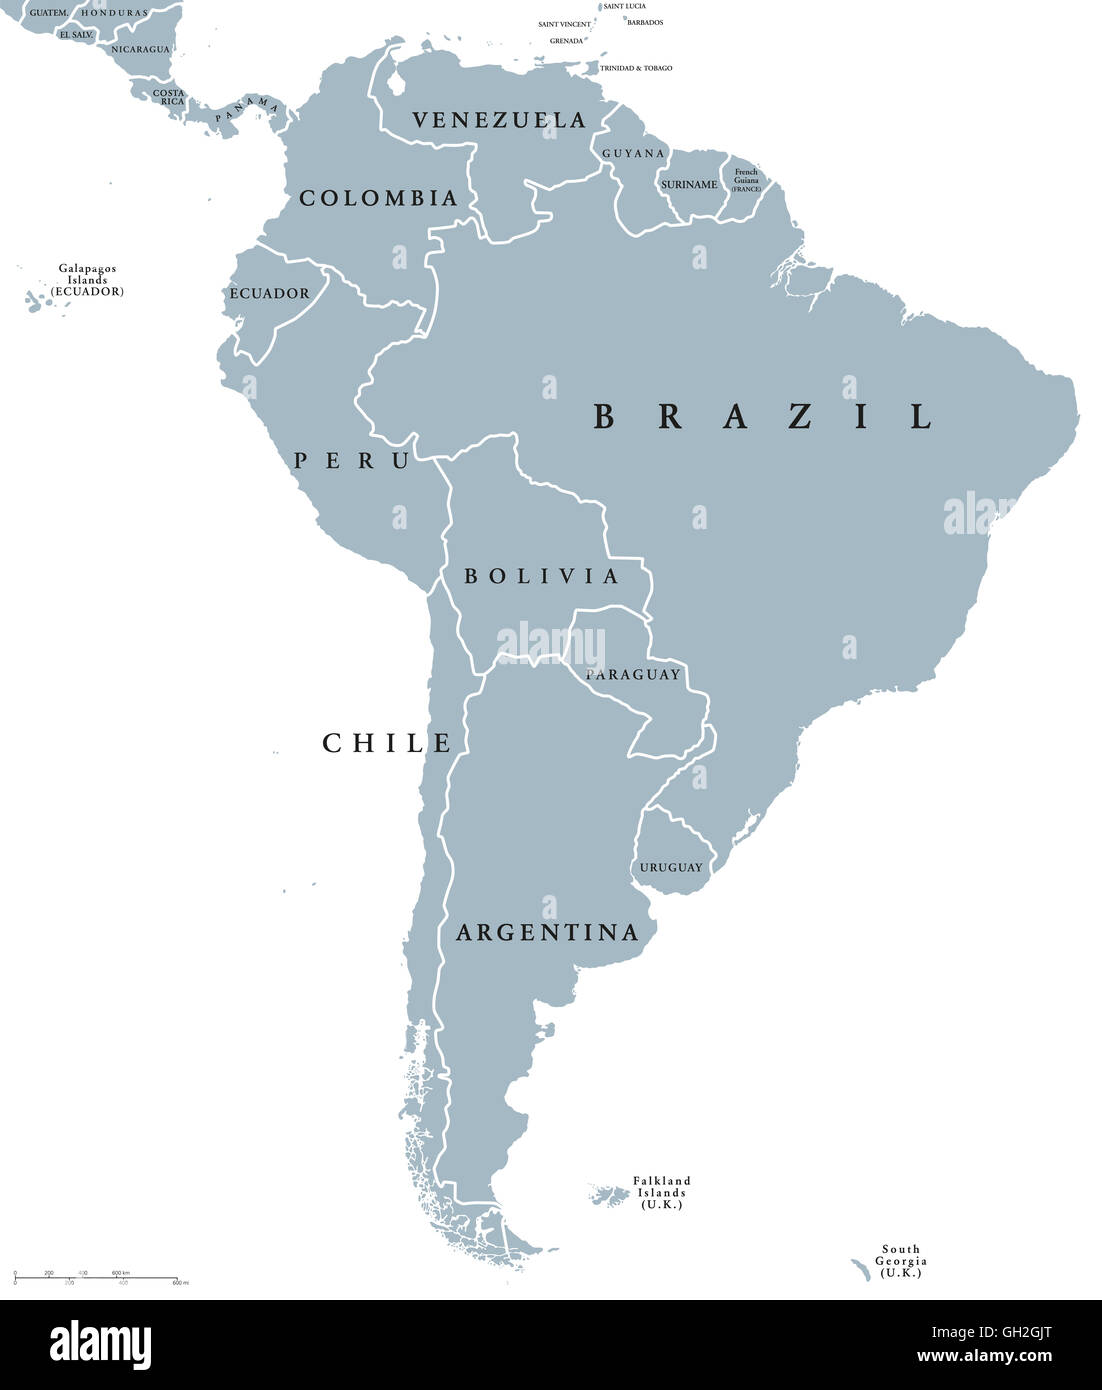 South America countries political map with national borders Stock